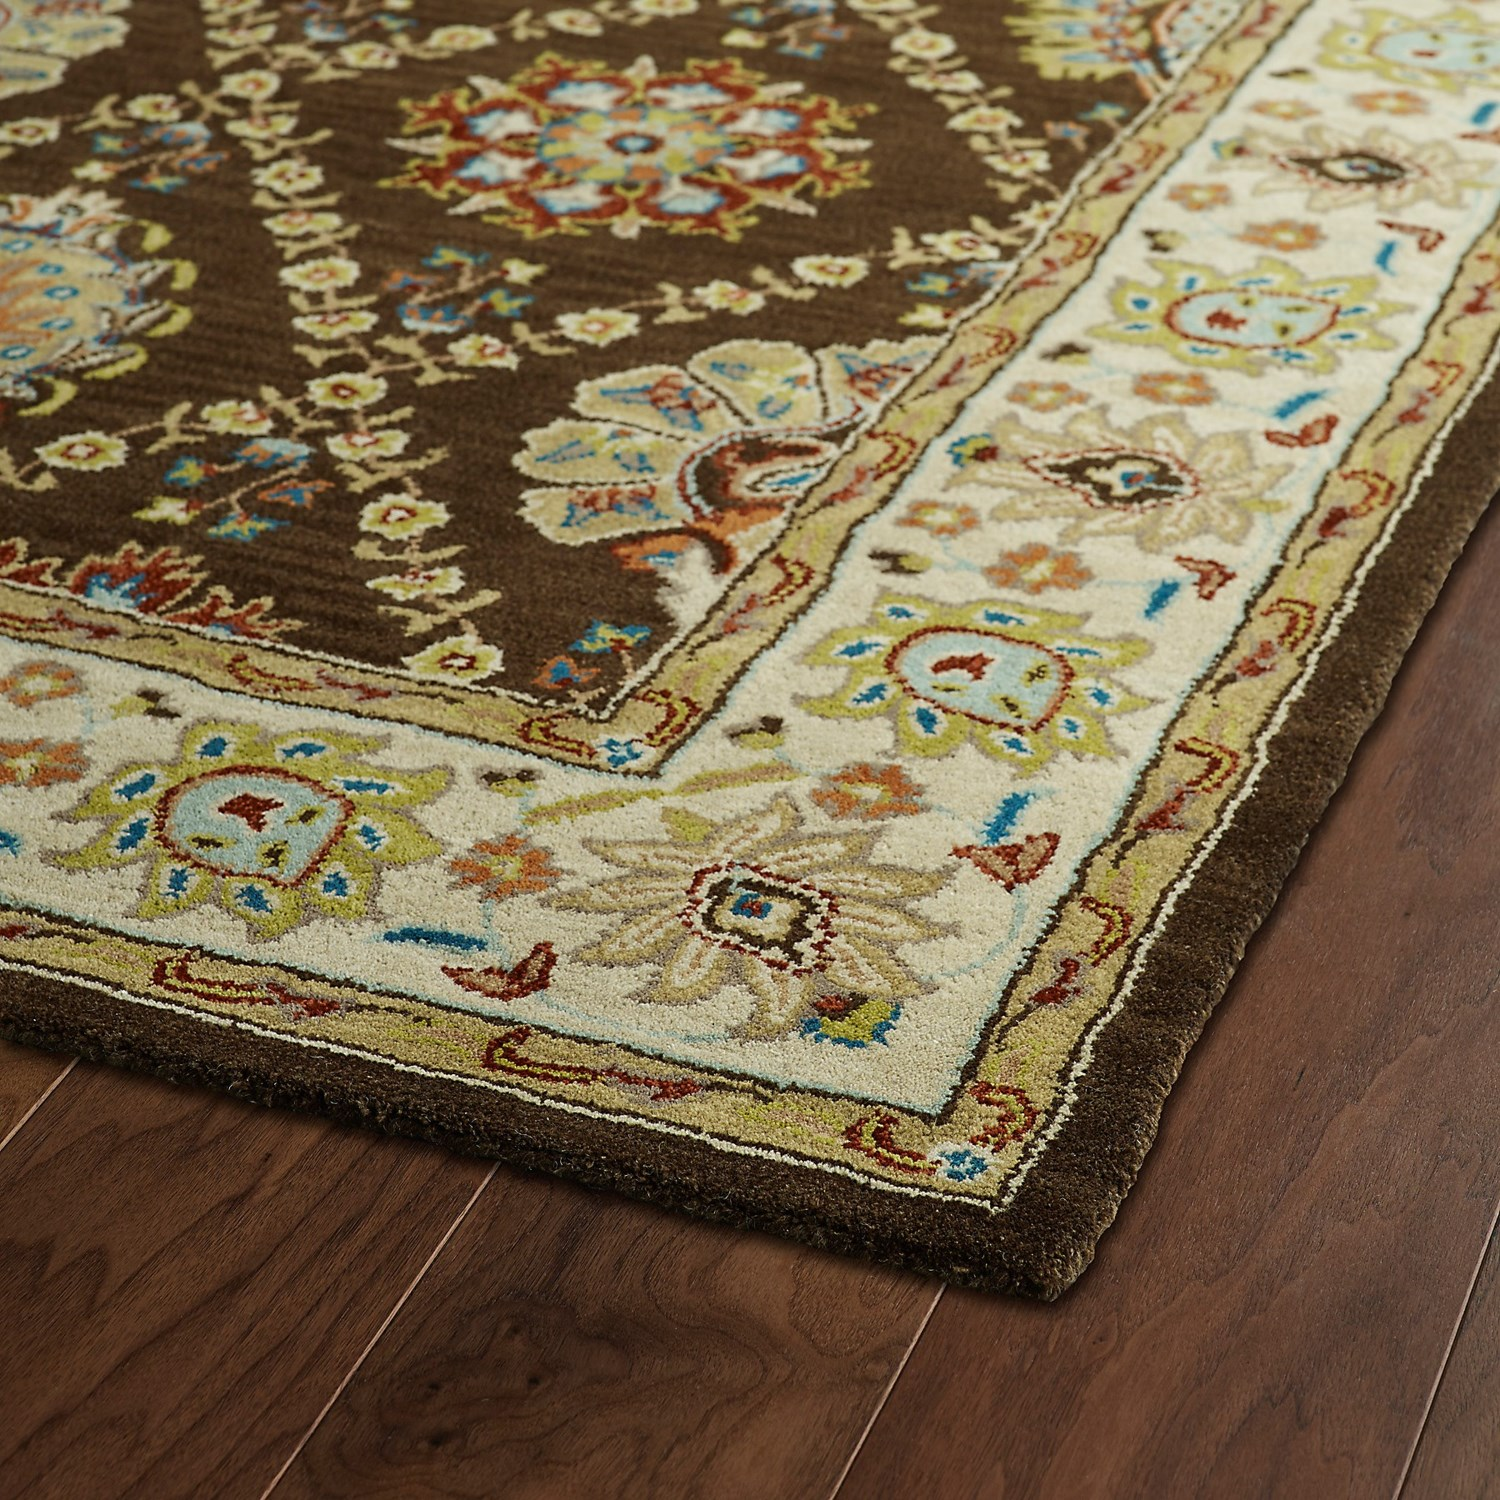 9x12 New Nourison Nourmak Hand Knotted Wool Reversible: Kaleen Taj Collection Area Rug